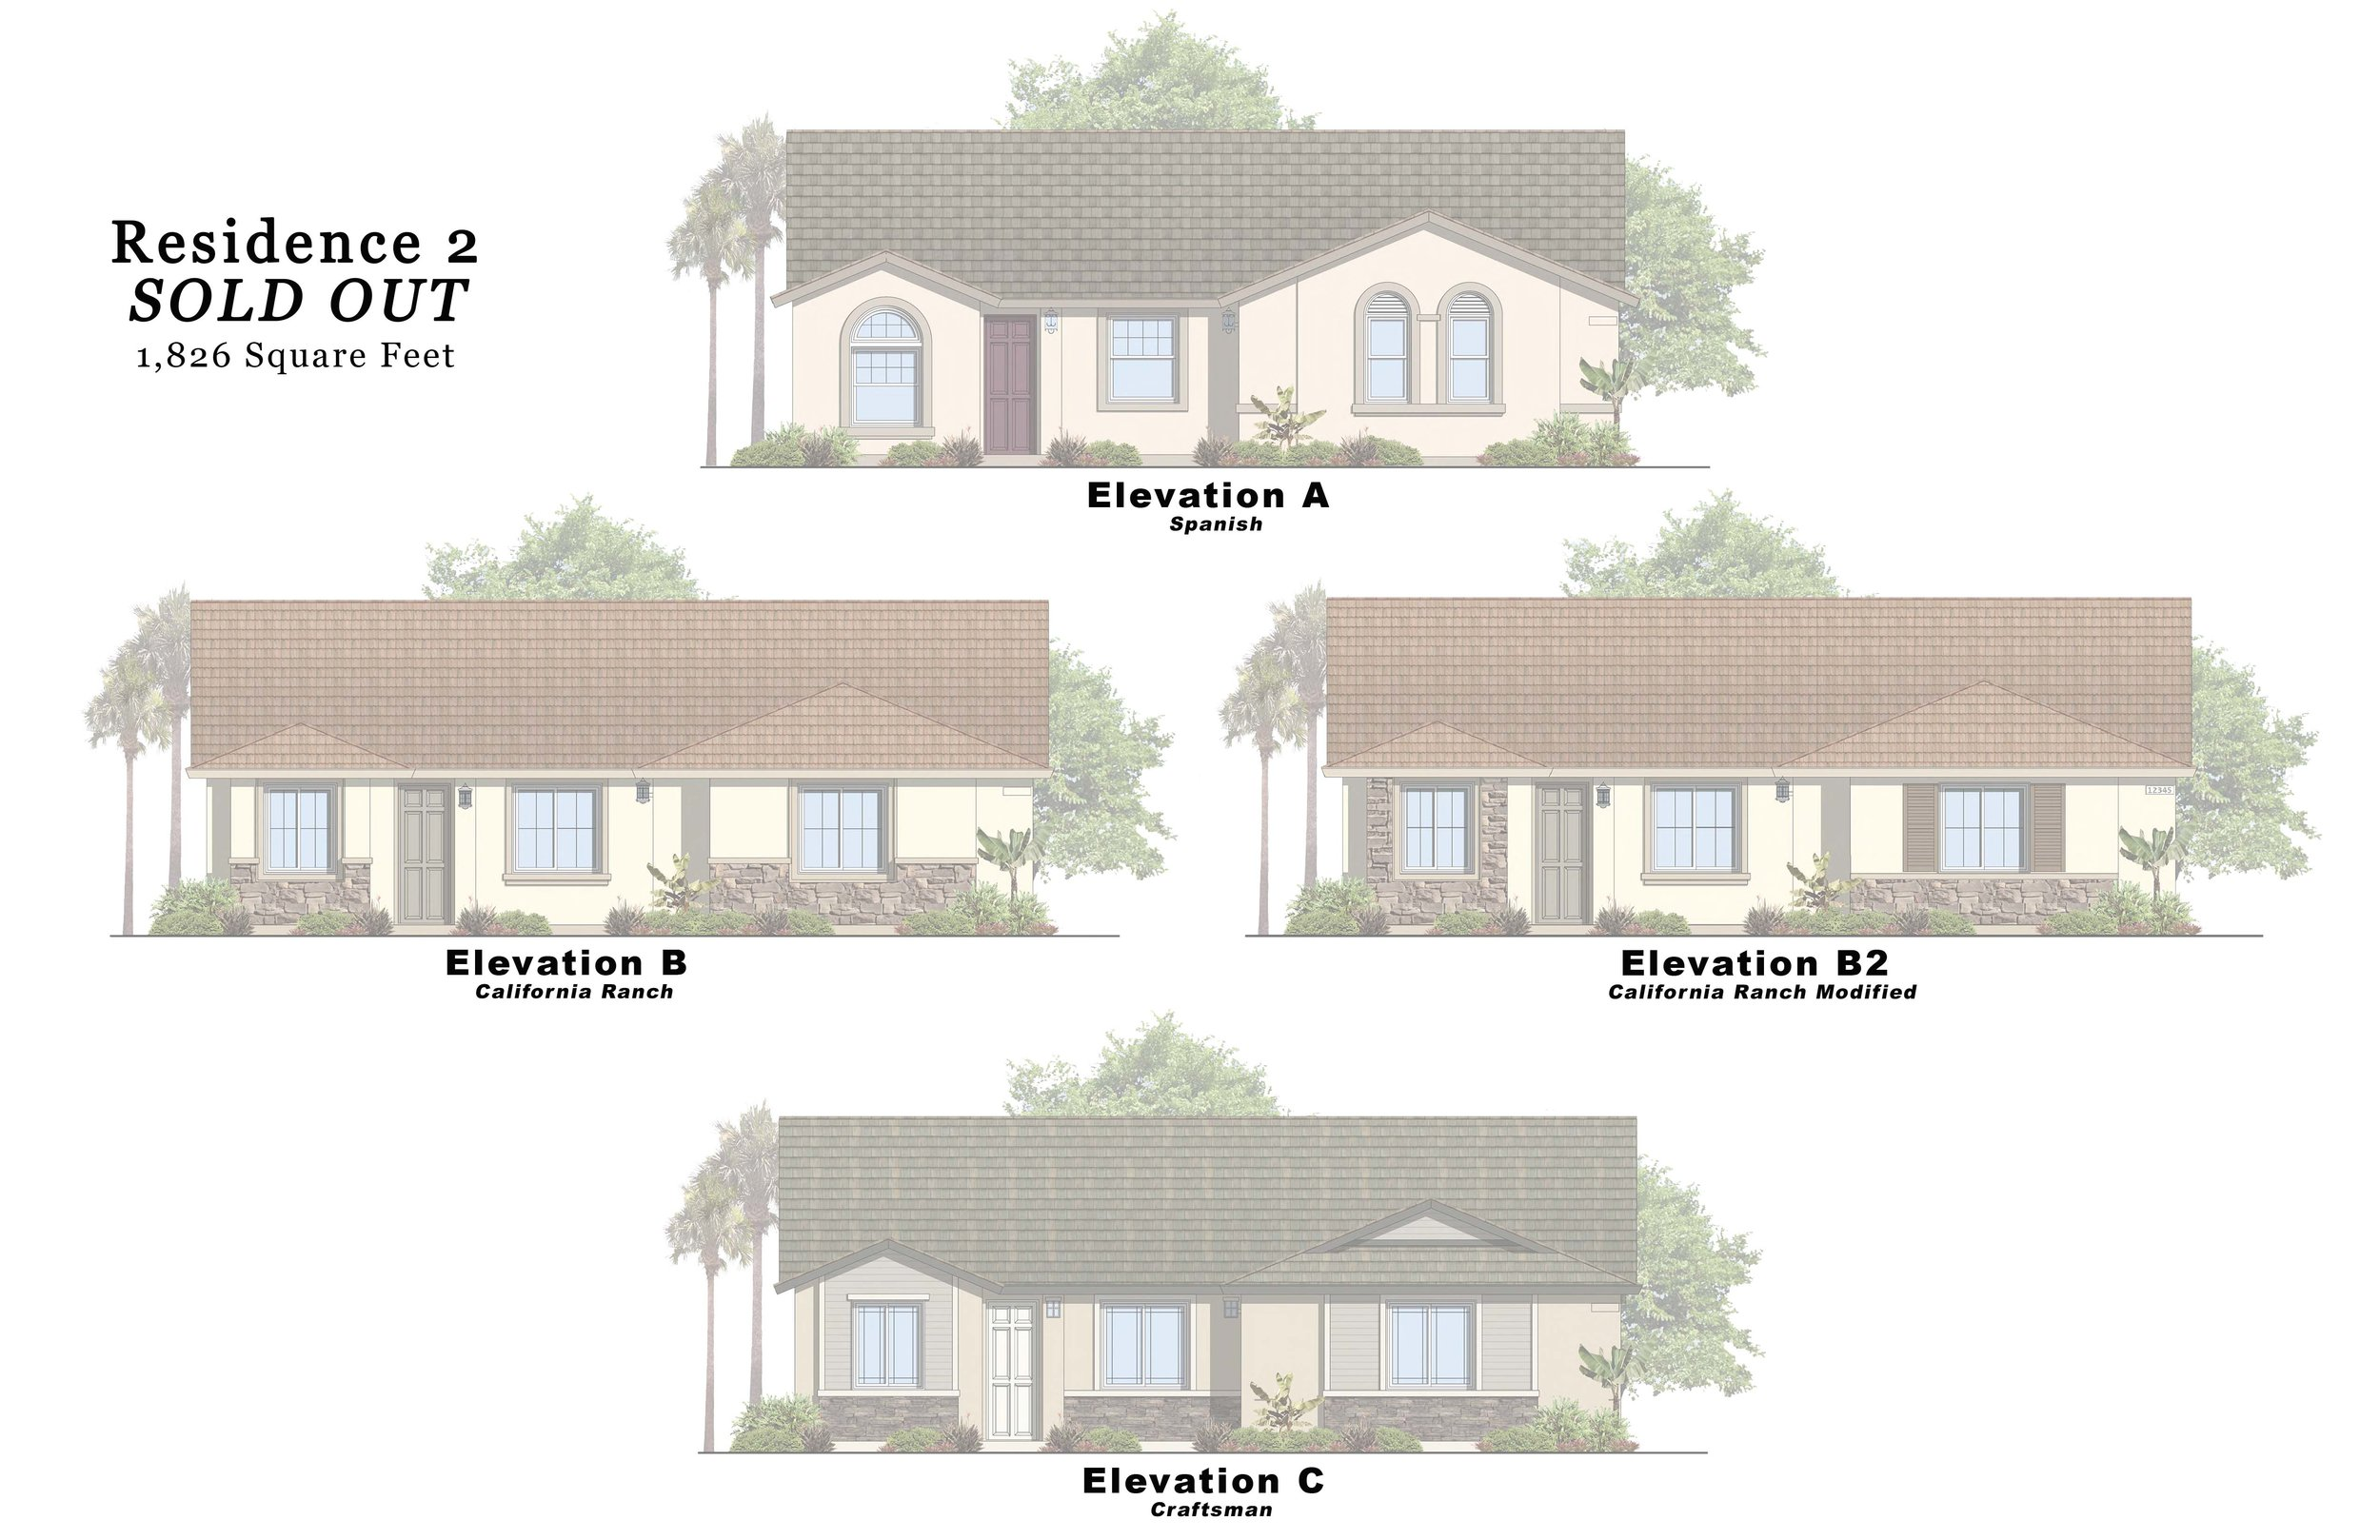 In the interest of continuing improvements, Evergreen Homes reserves the right to change features, prices, plans, and specifications without prior notice per plan, per community. Square footages and measurements are approximate. Additional restrictions may apply.